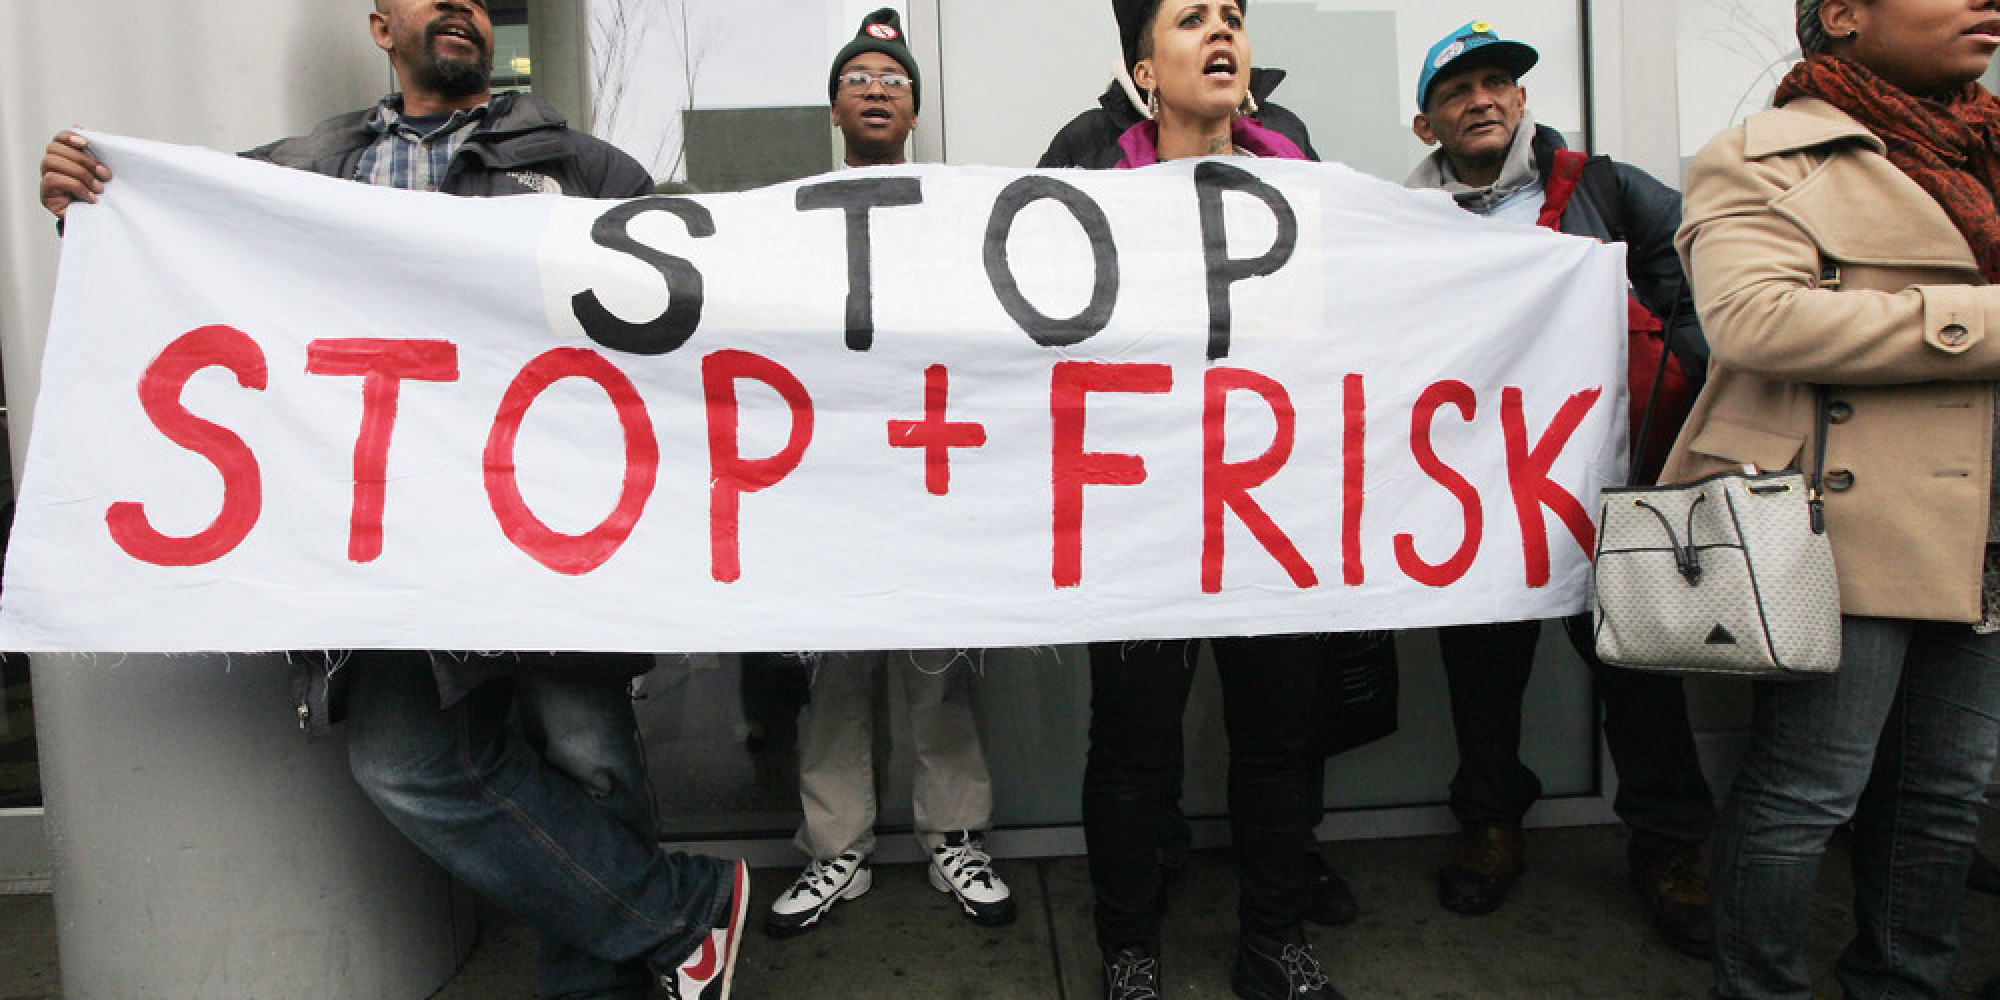 living in a stop and frisk Stop and frisk the ethnic and religious minorities homeless people intersections citywide impact 17 chapter 3 living under siege: the impact of stop and.